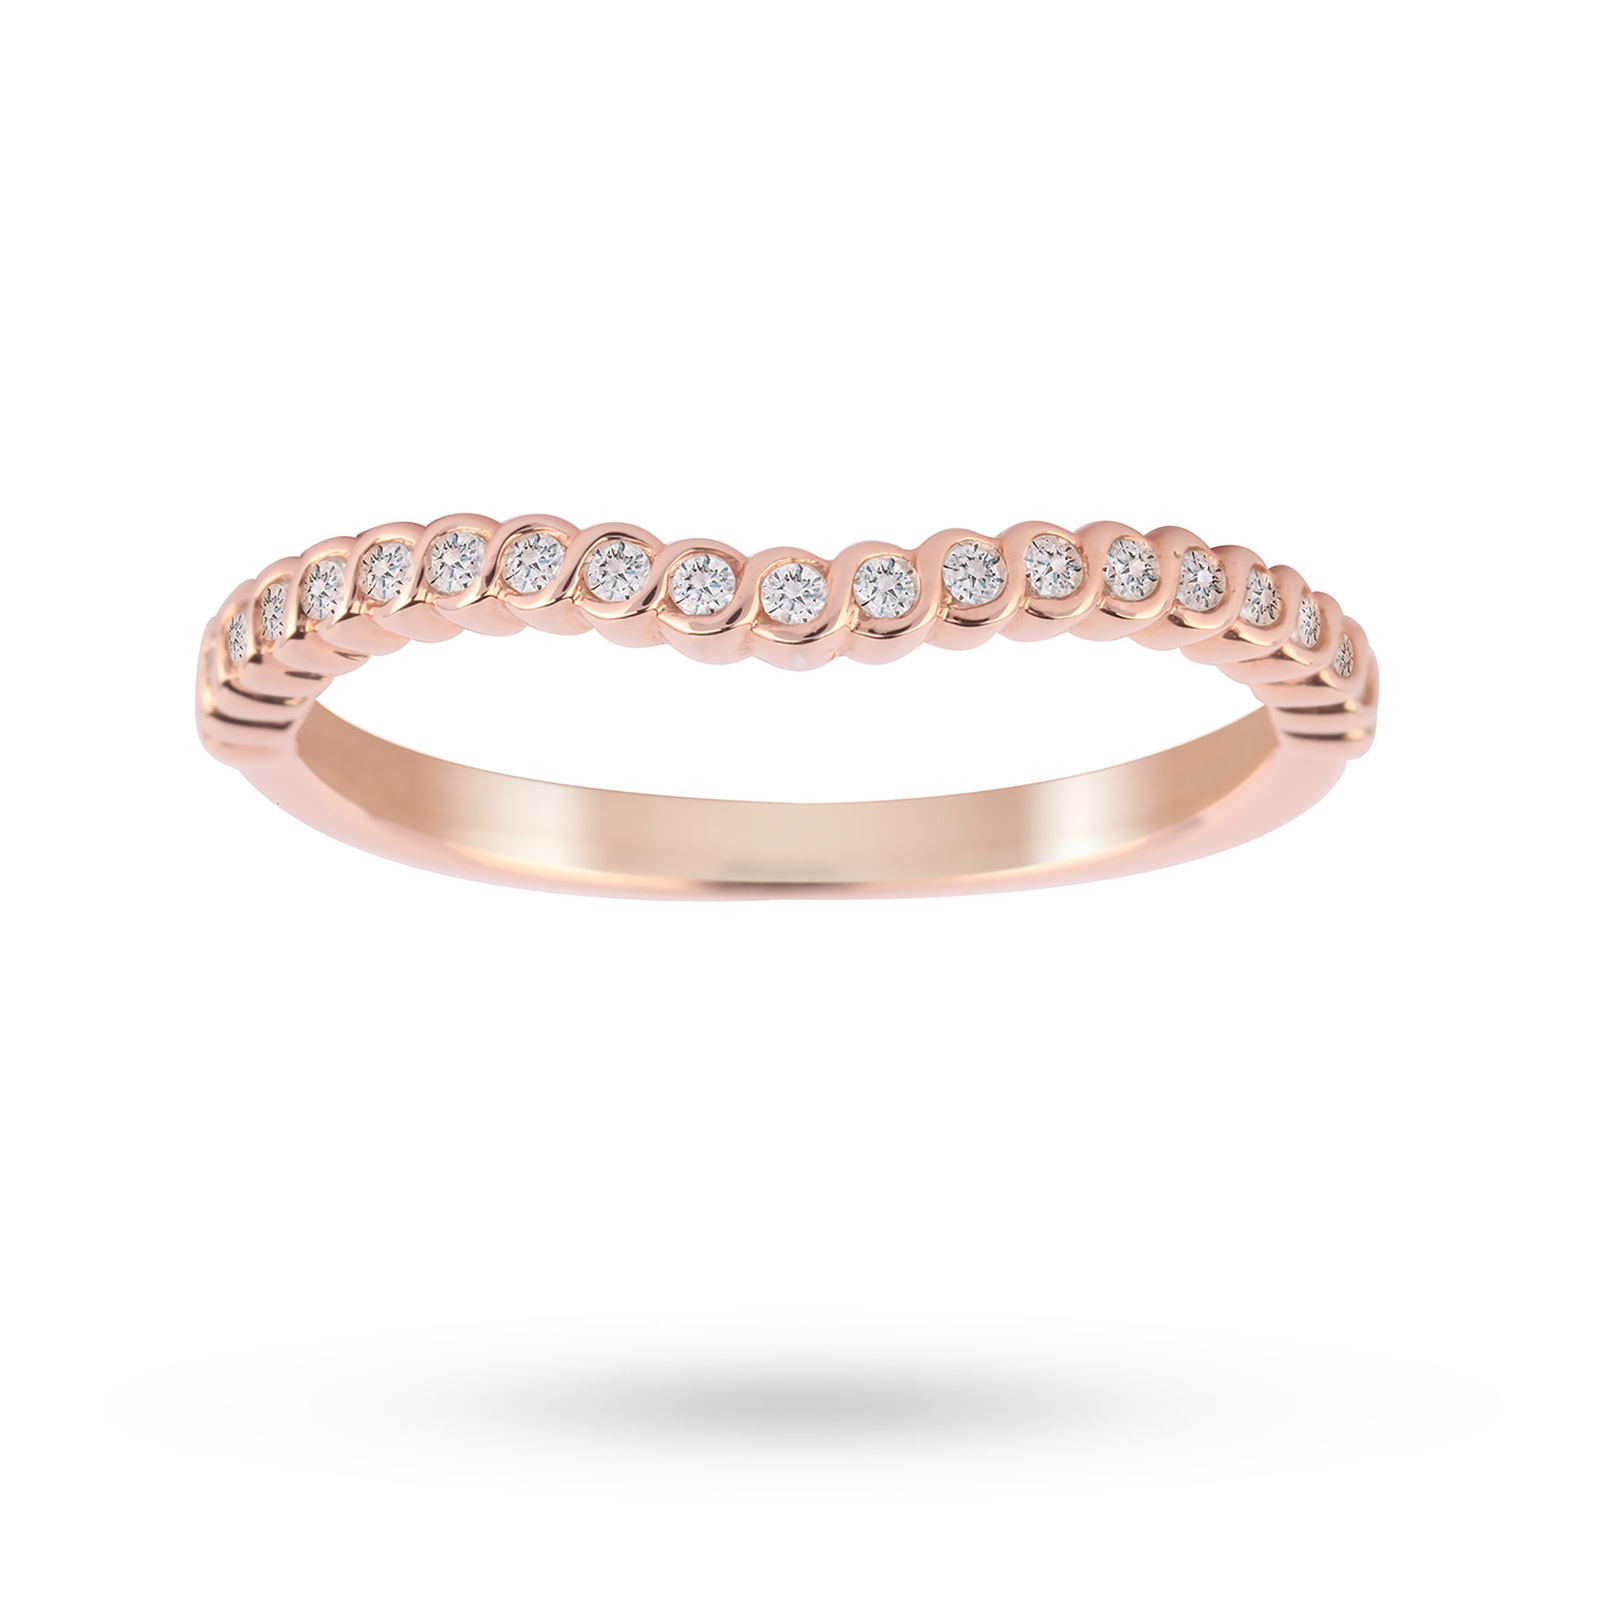 Jenny Packham 18ct Rose Gold 0.15cttw Twist Dip Band Ring - Ring Size J